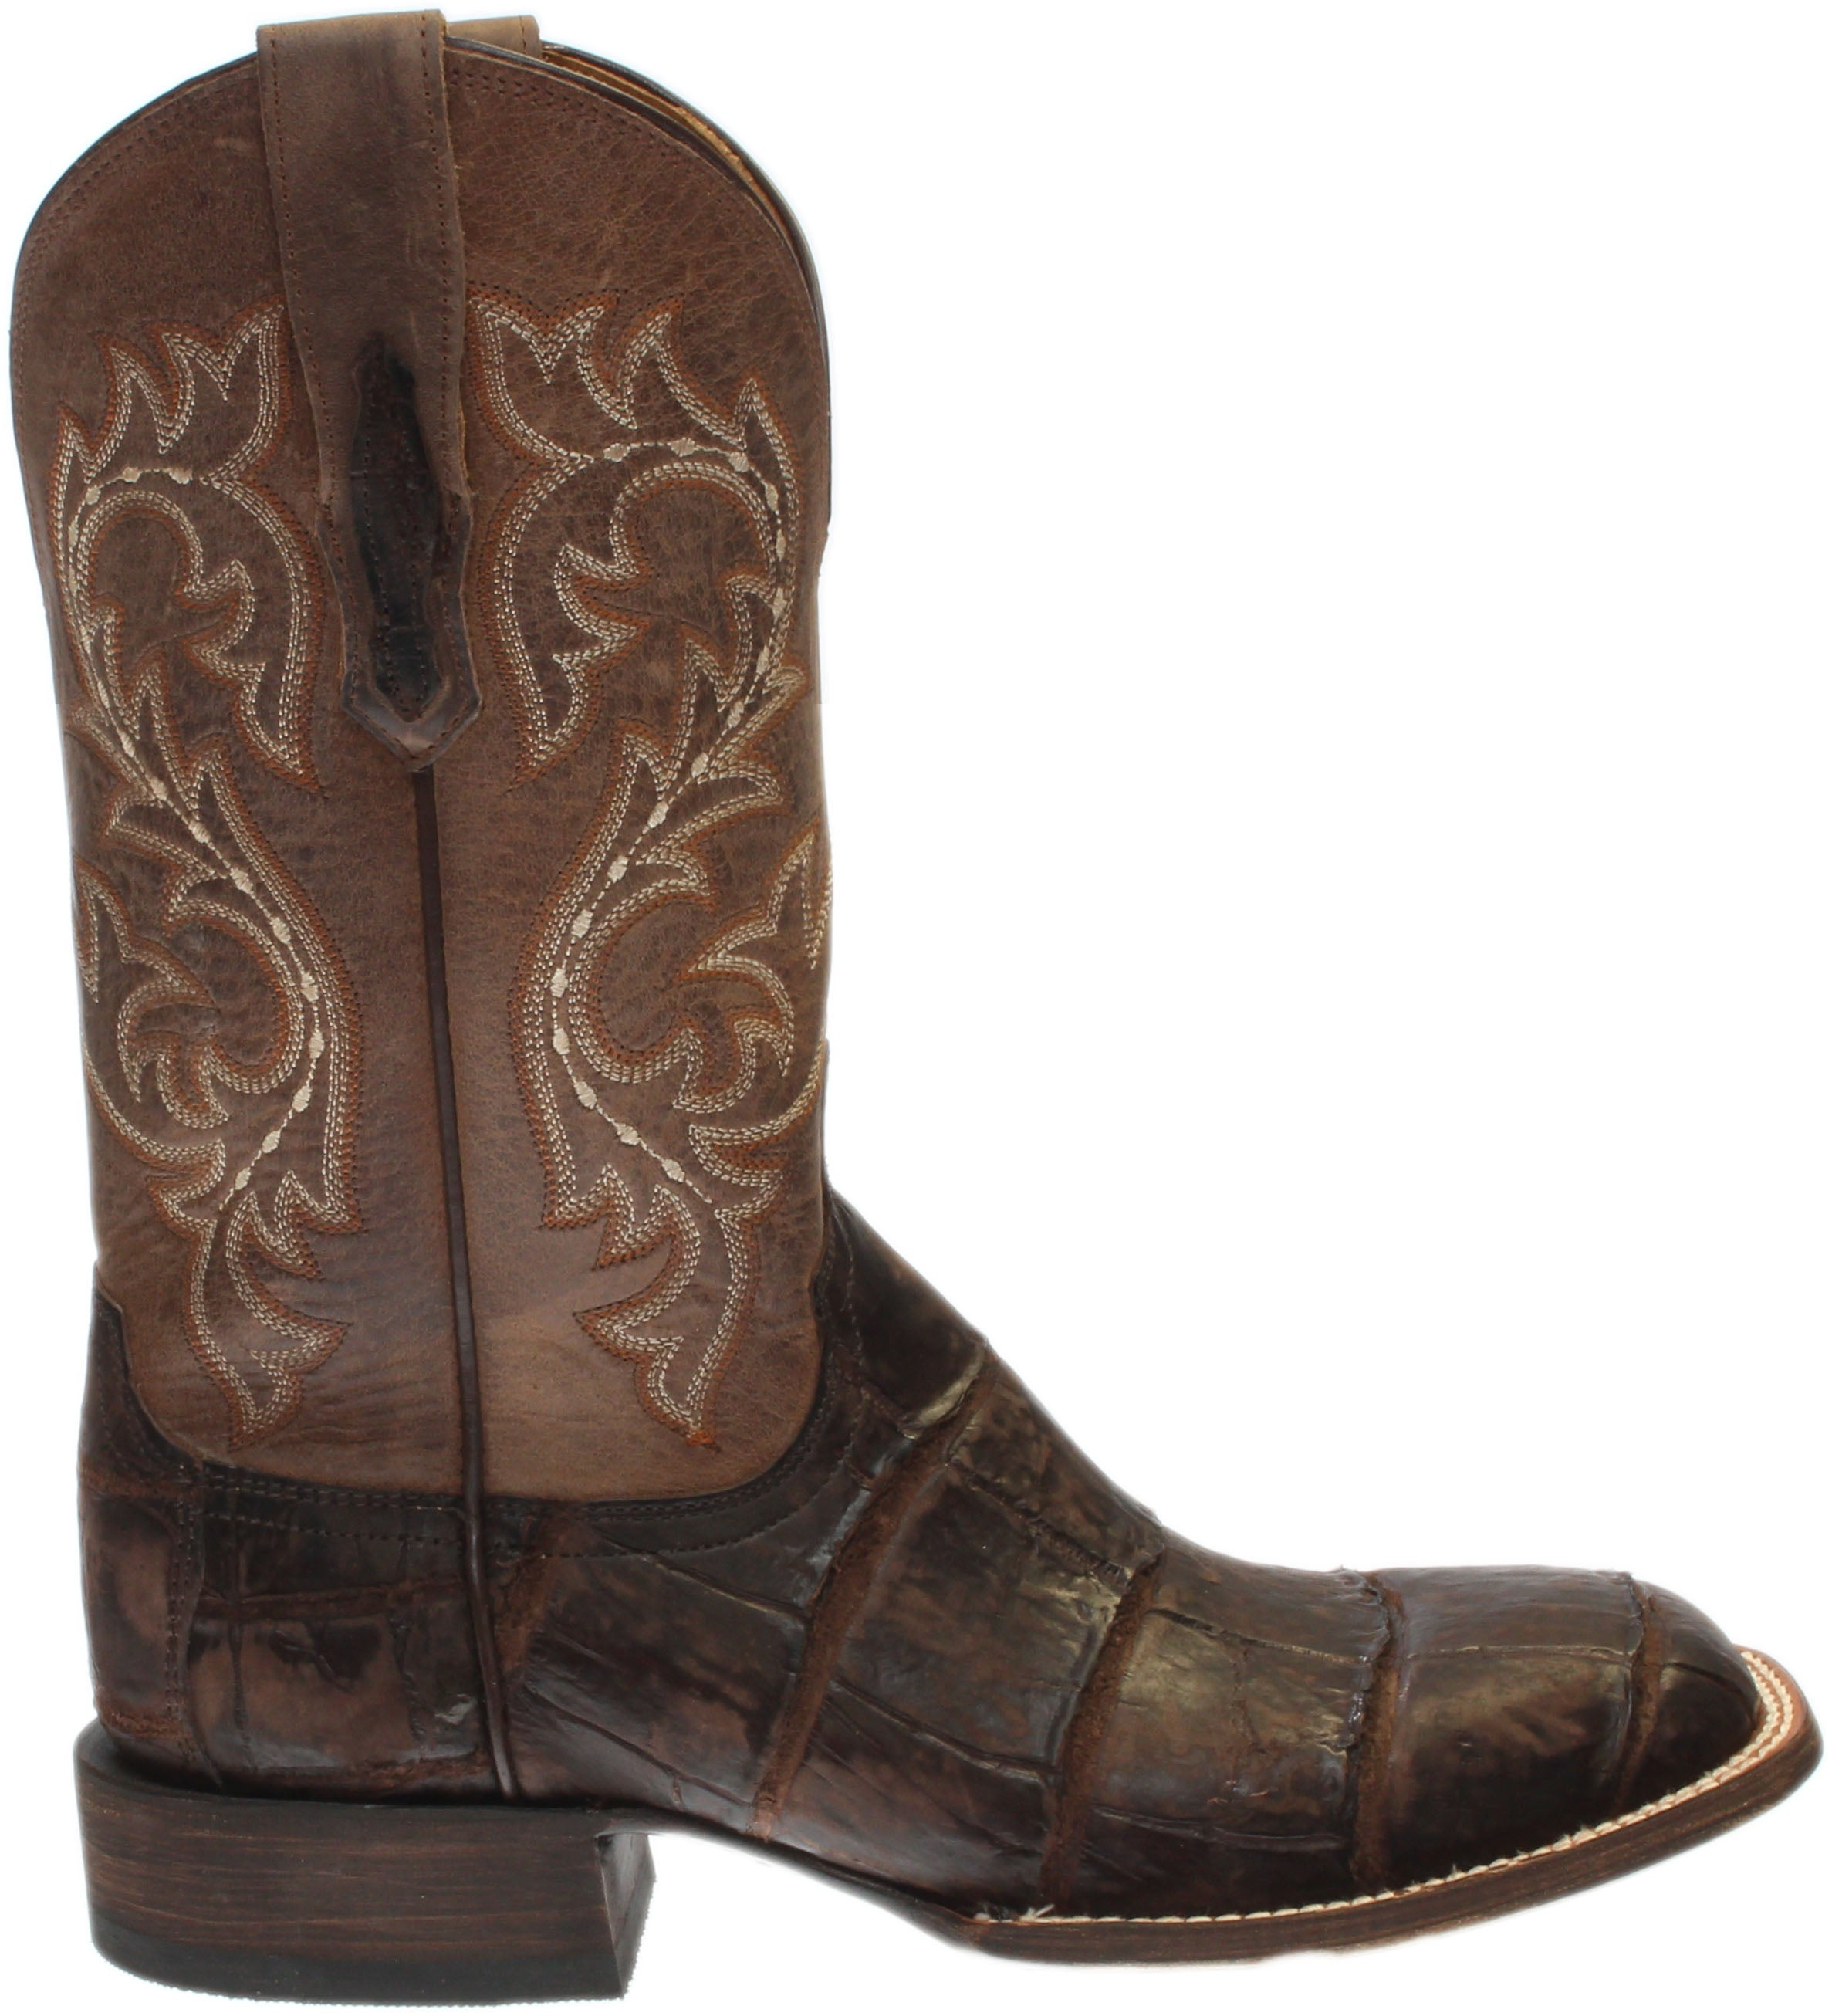 Lucchese Malcolm Alligator Leather Boots